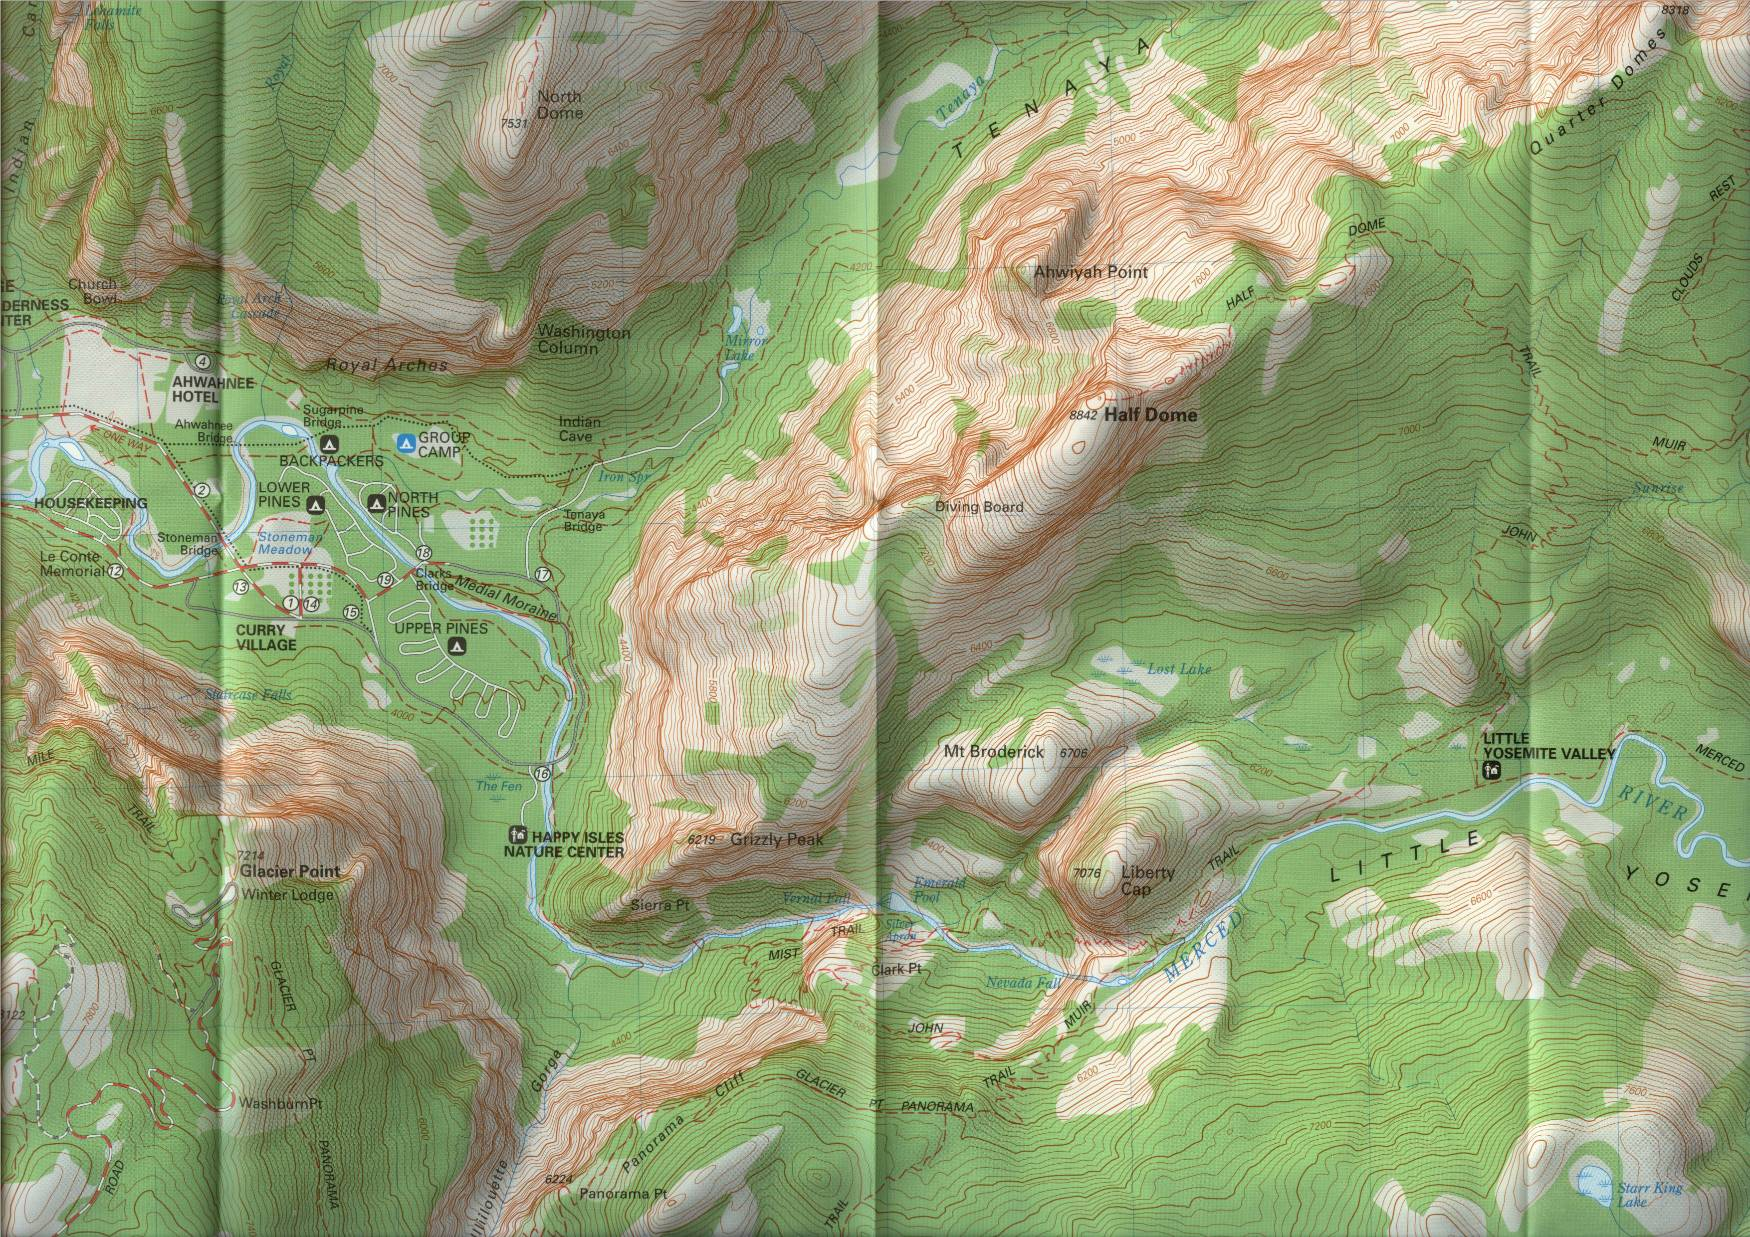 Half dome topographic map of the half dome trail the valley destinations curry village ahwanee hotel the pines campgrounds can be seen publicscrutiny Choice Image